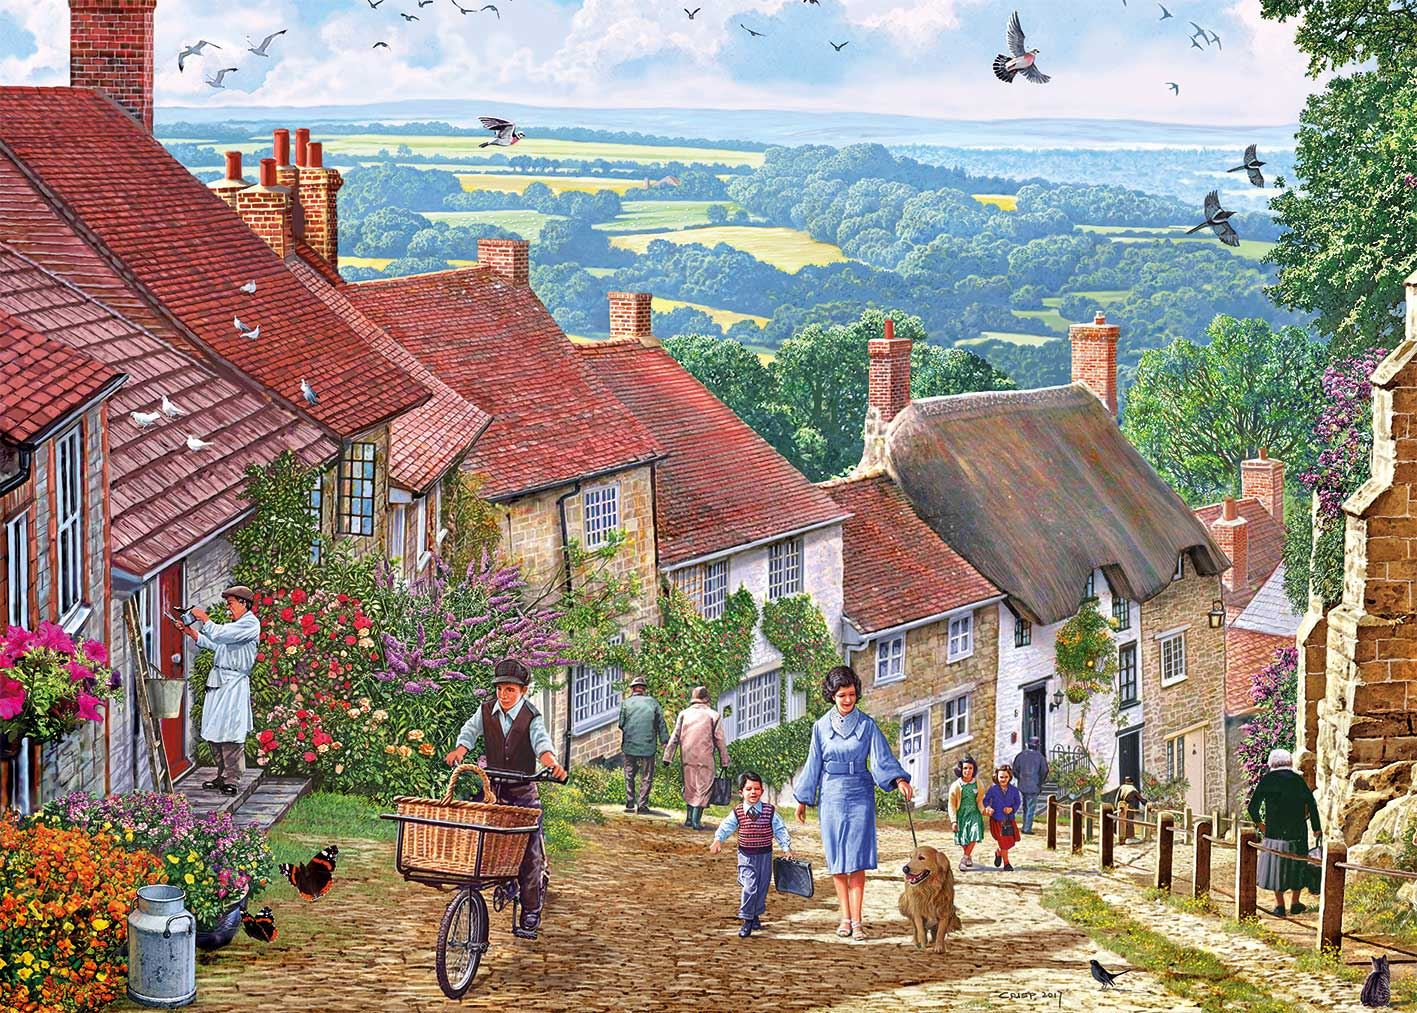 Gibsons Gold Hill Jigsaw Puzzle (1000 pieces)